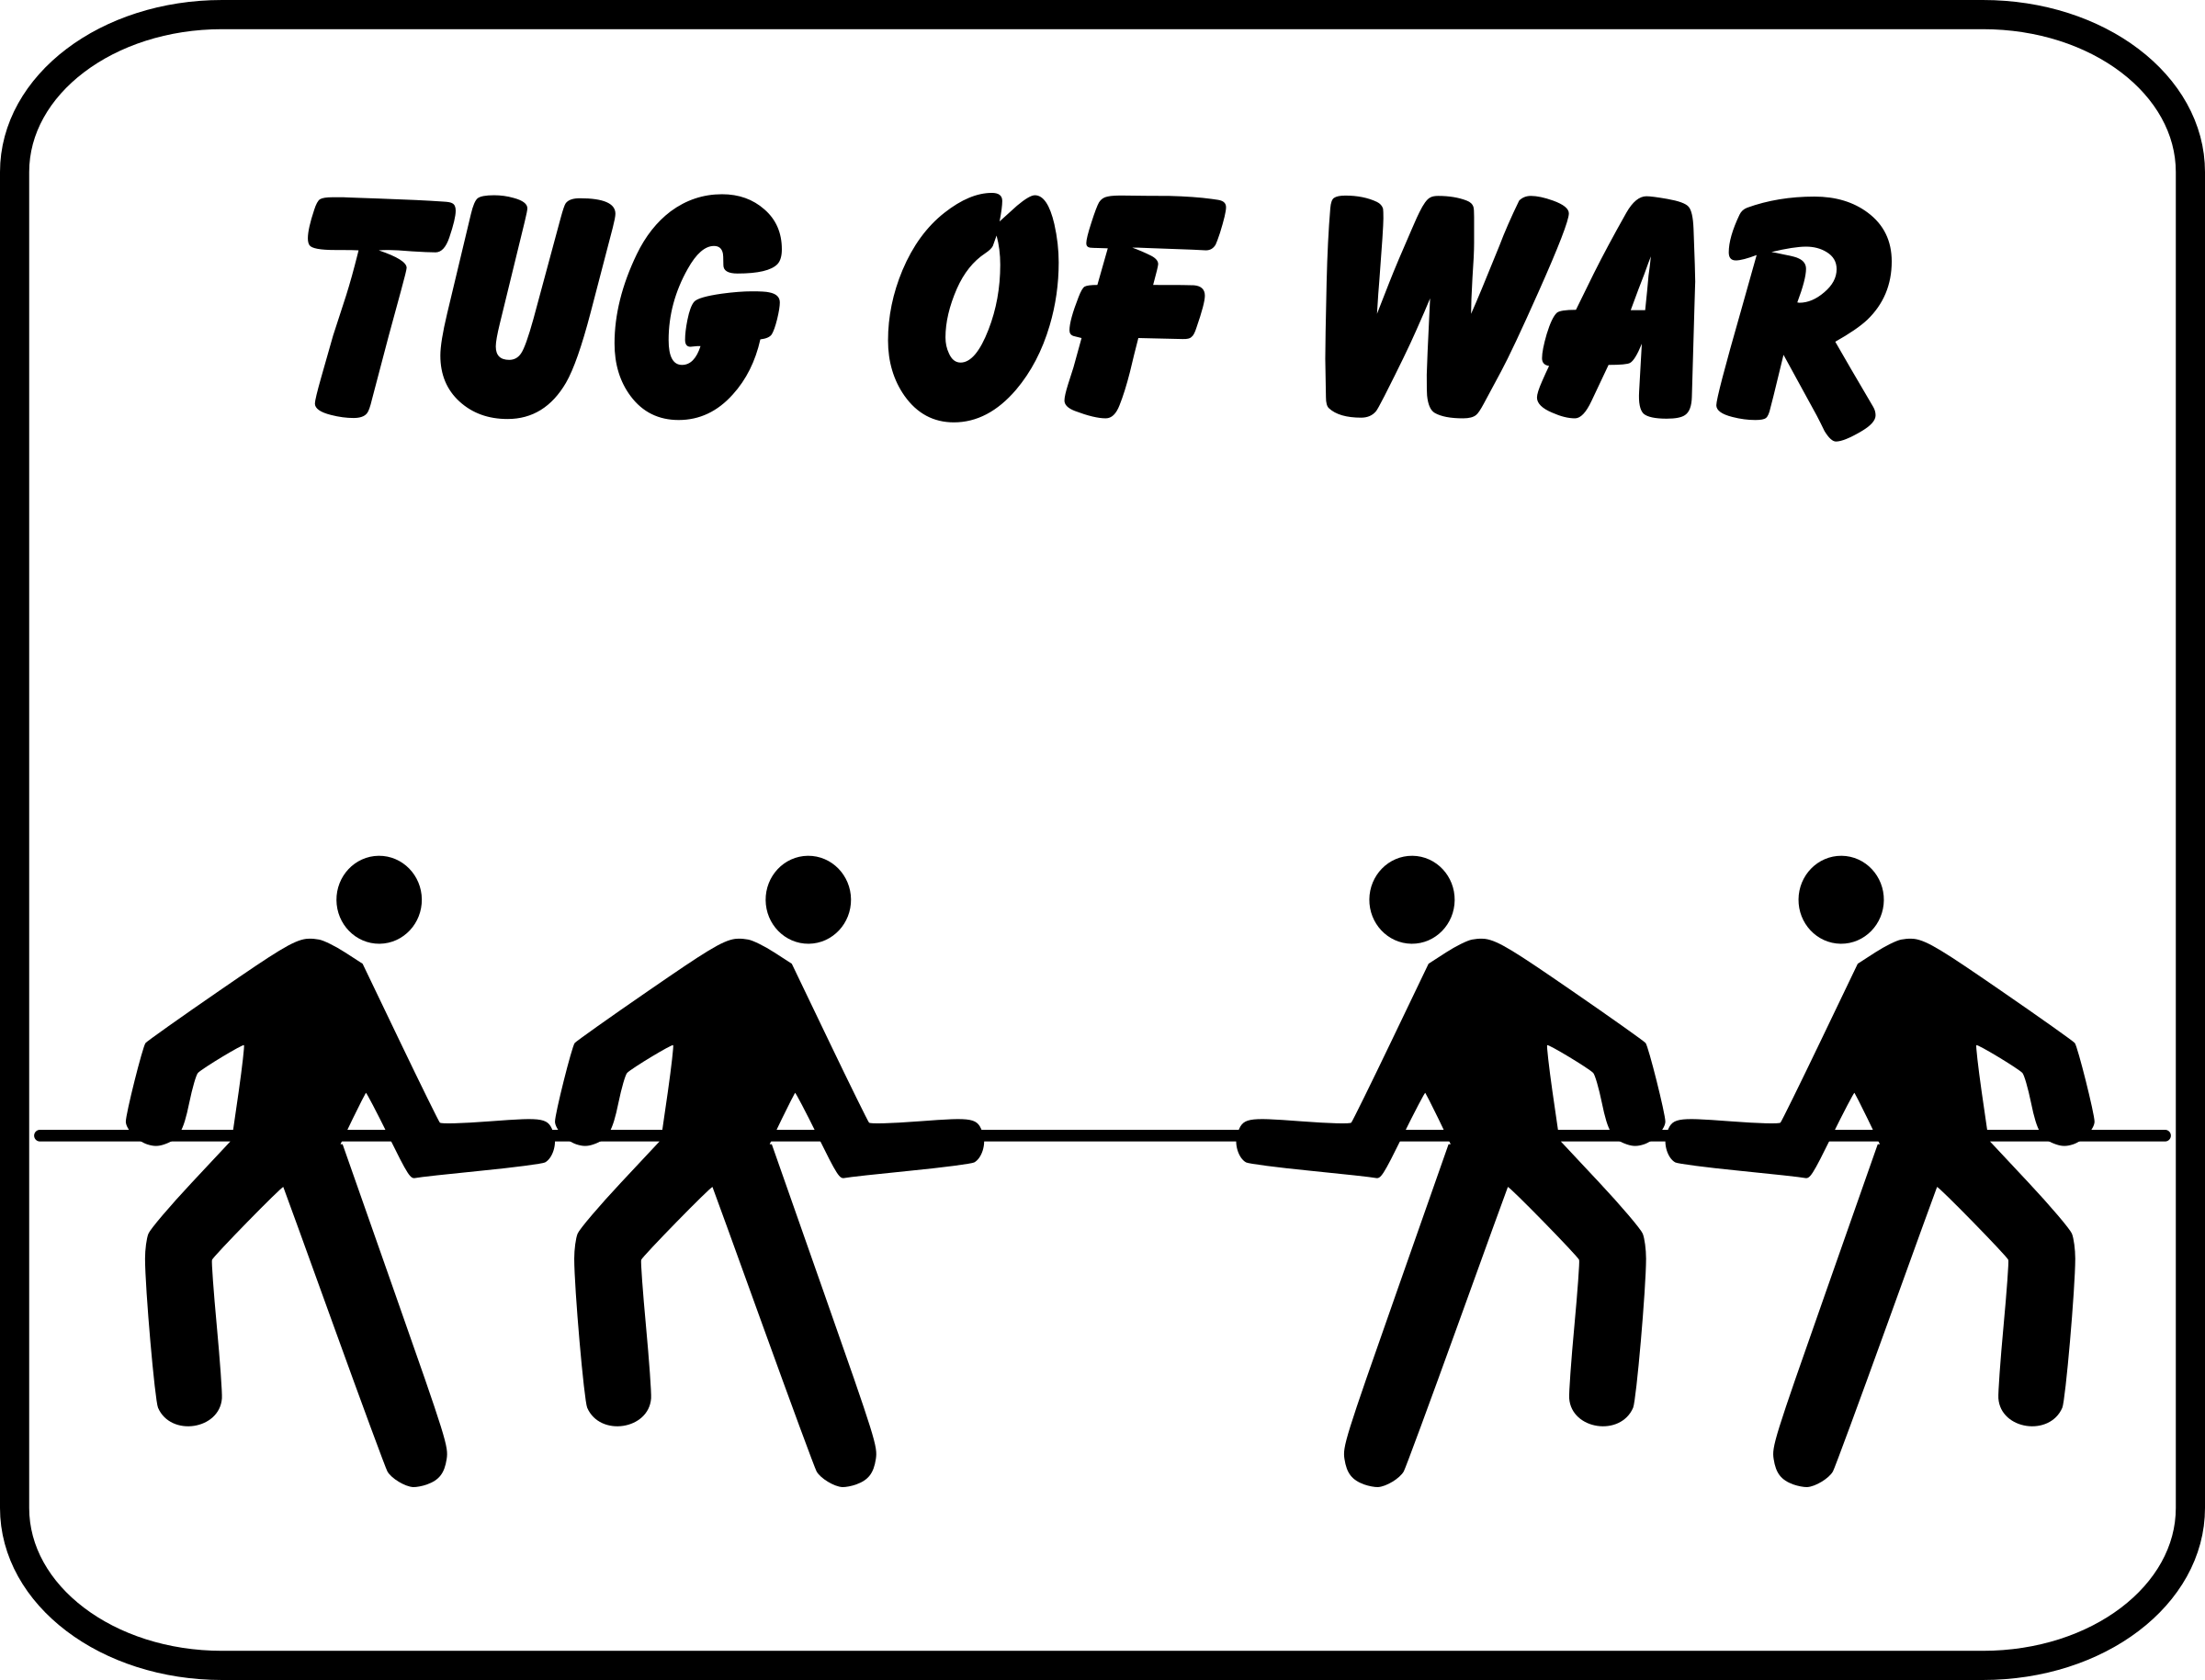 tug of war sign by pjsvbfcm